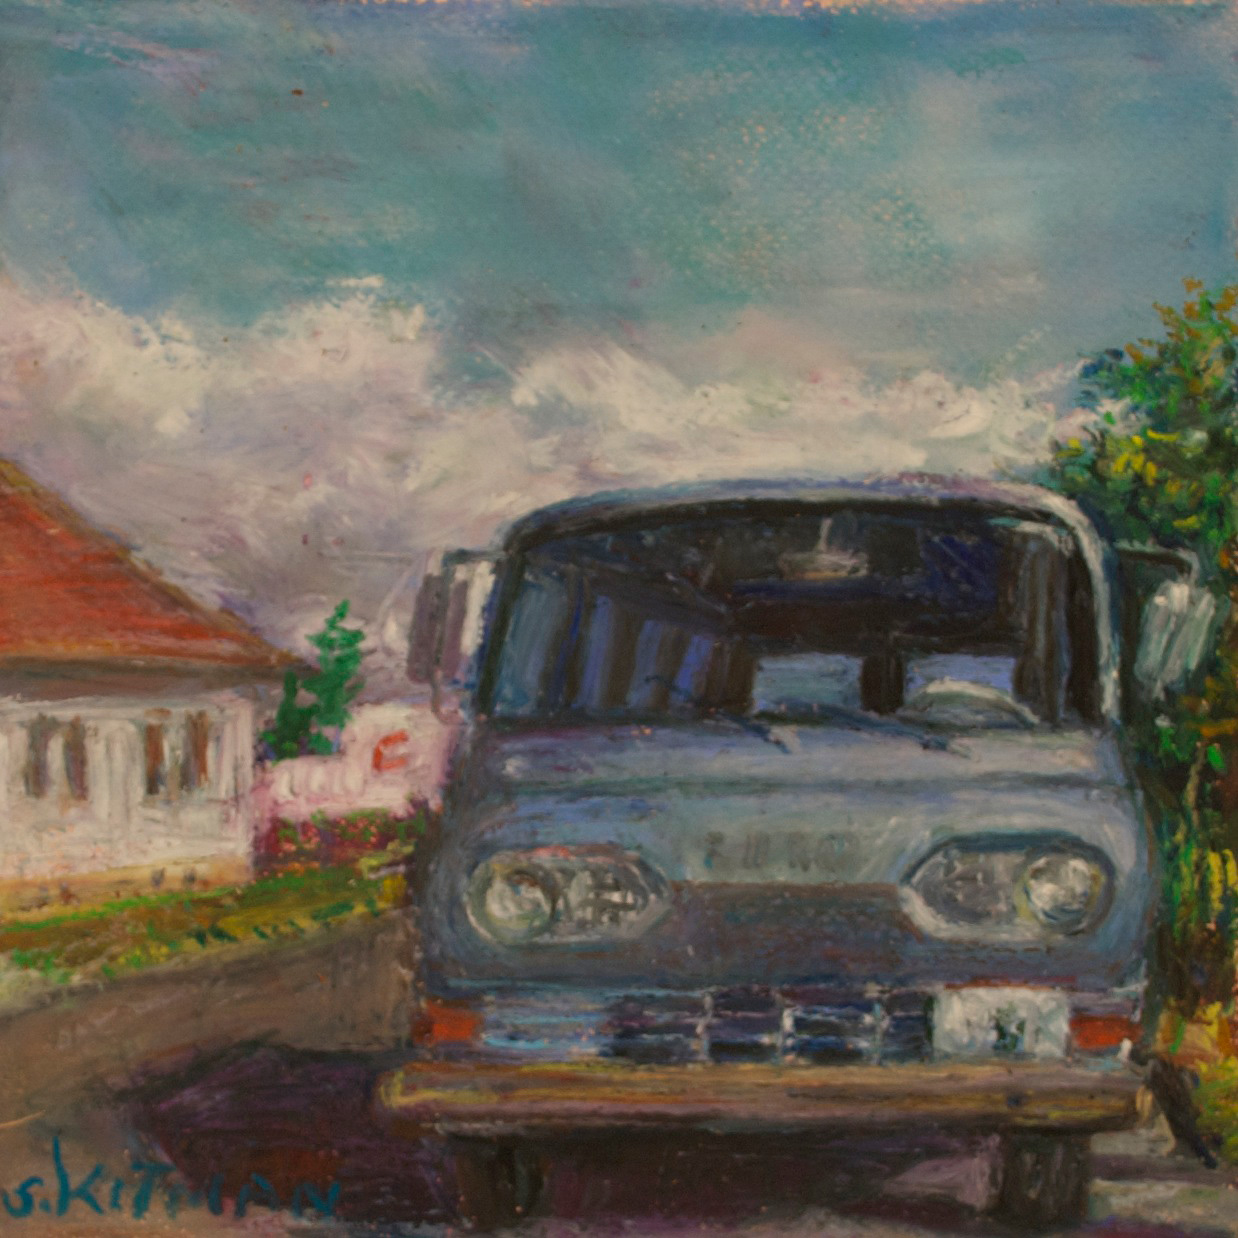 Blue Sky Ford Falcon, oil pastel on paper, mounted, 8 x 8 x .5 in, $225.00